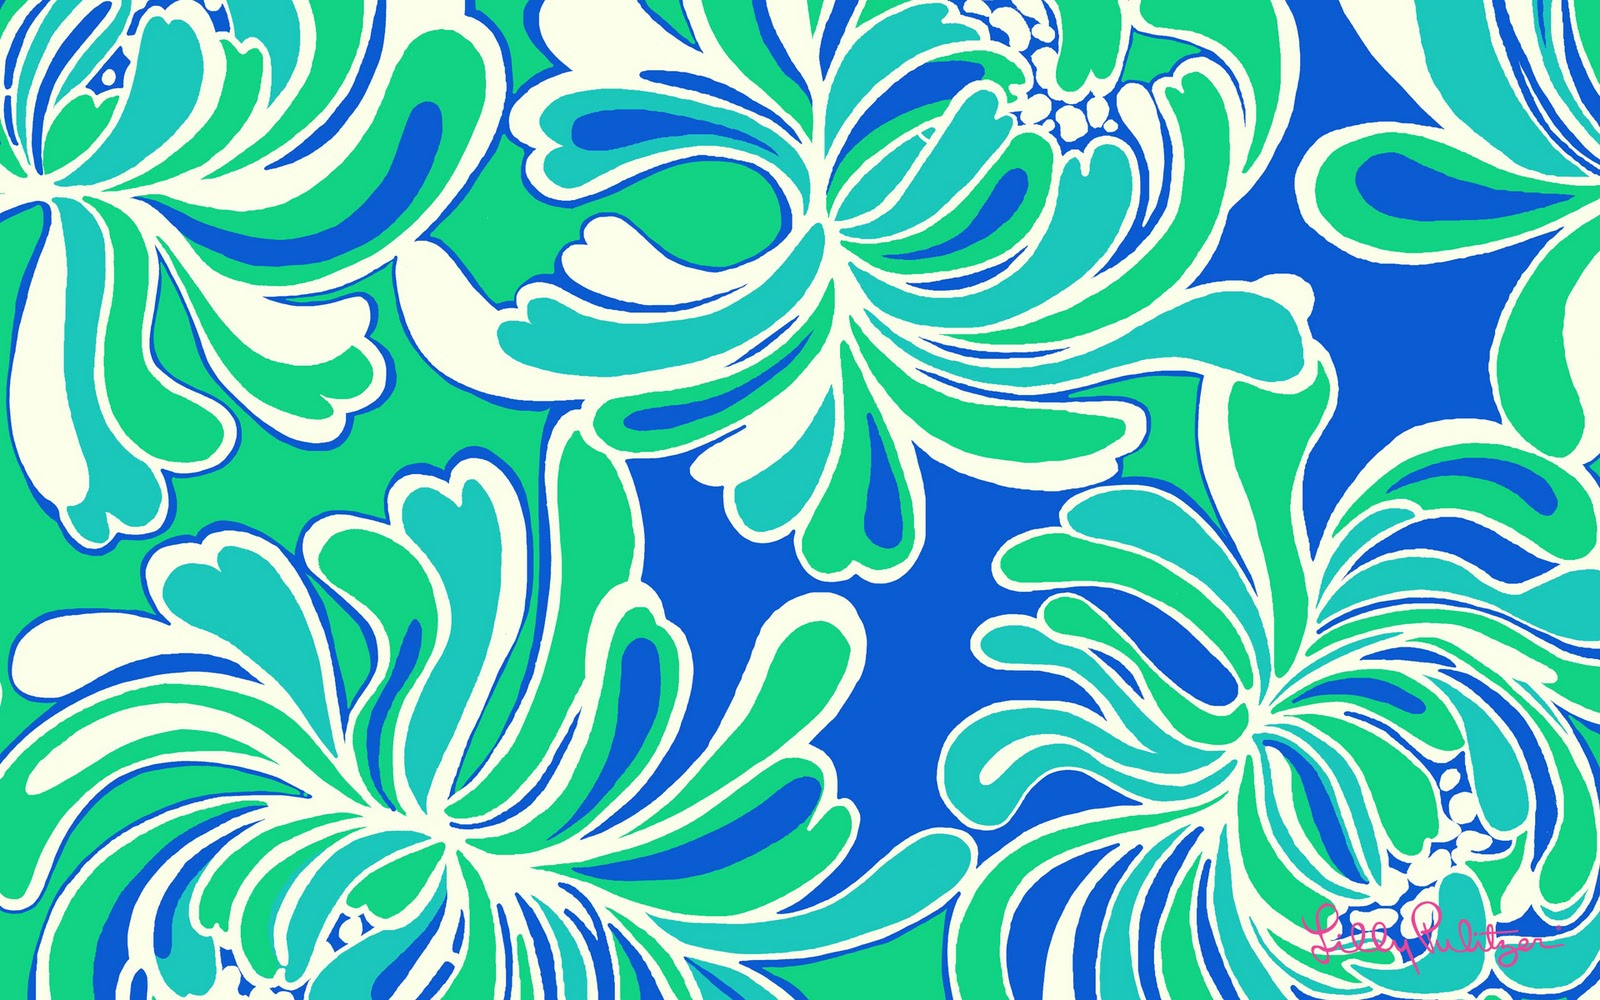 lilly pulitzer backgrounds 12538 1600x1000 px